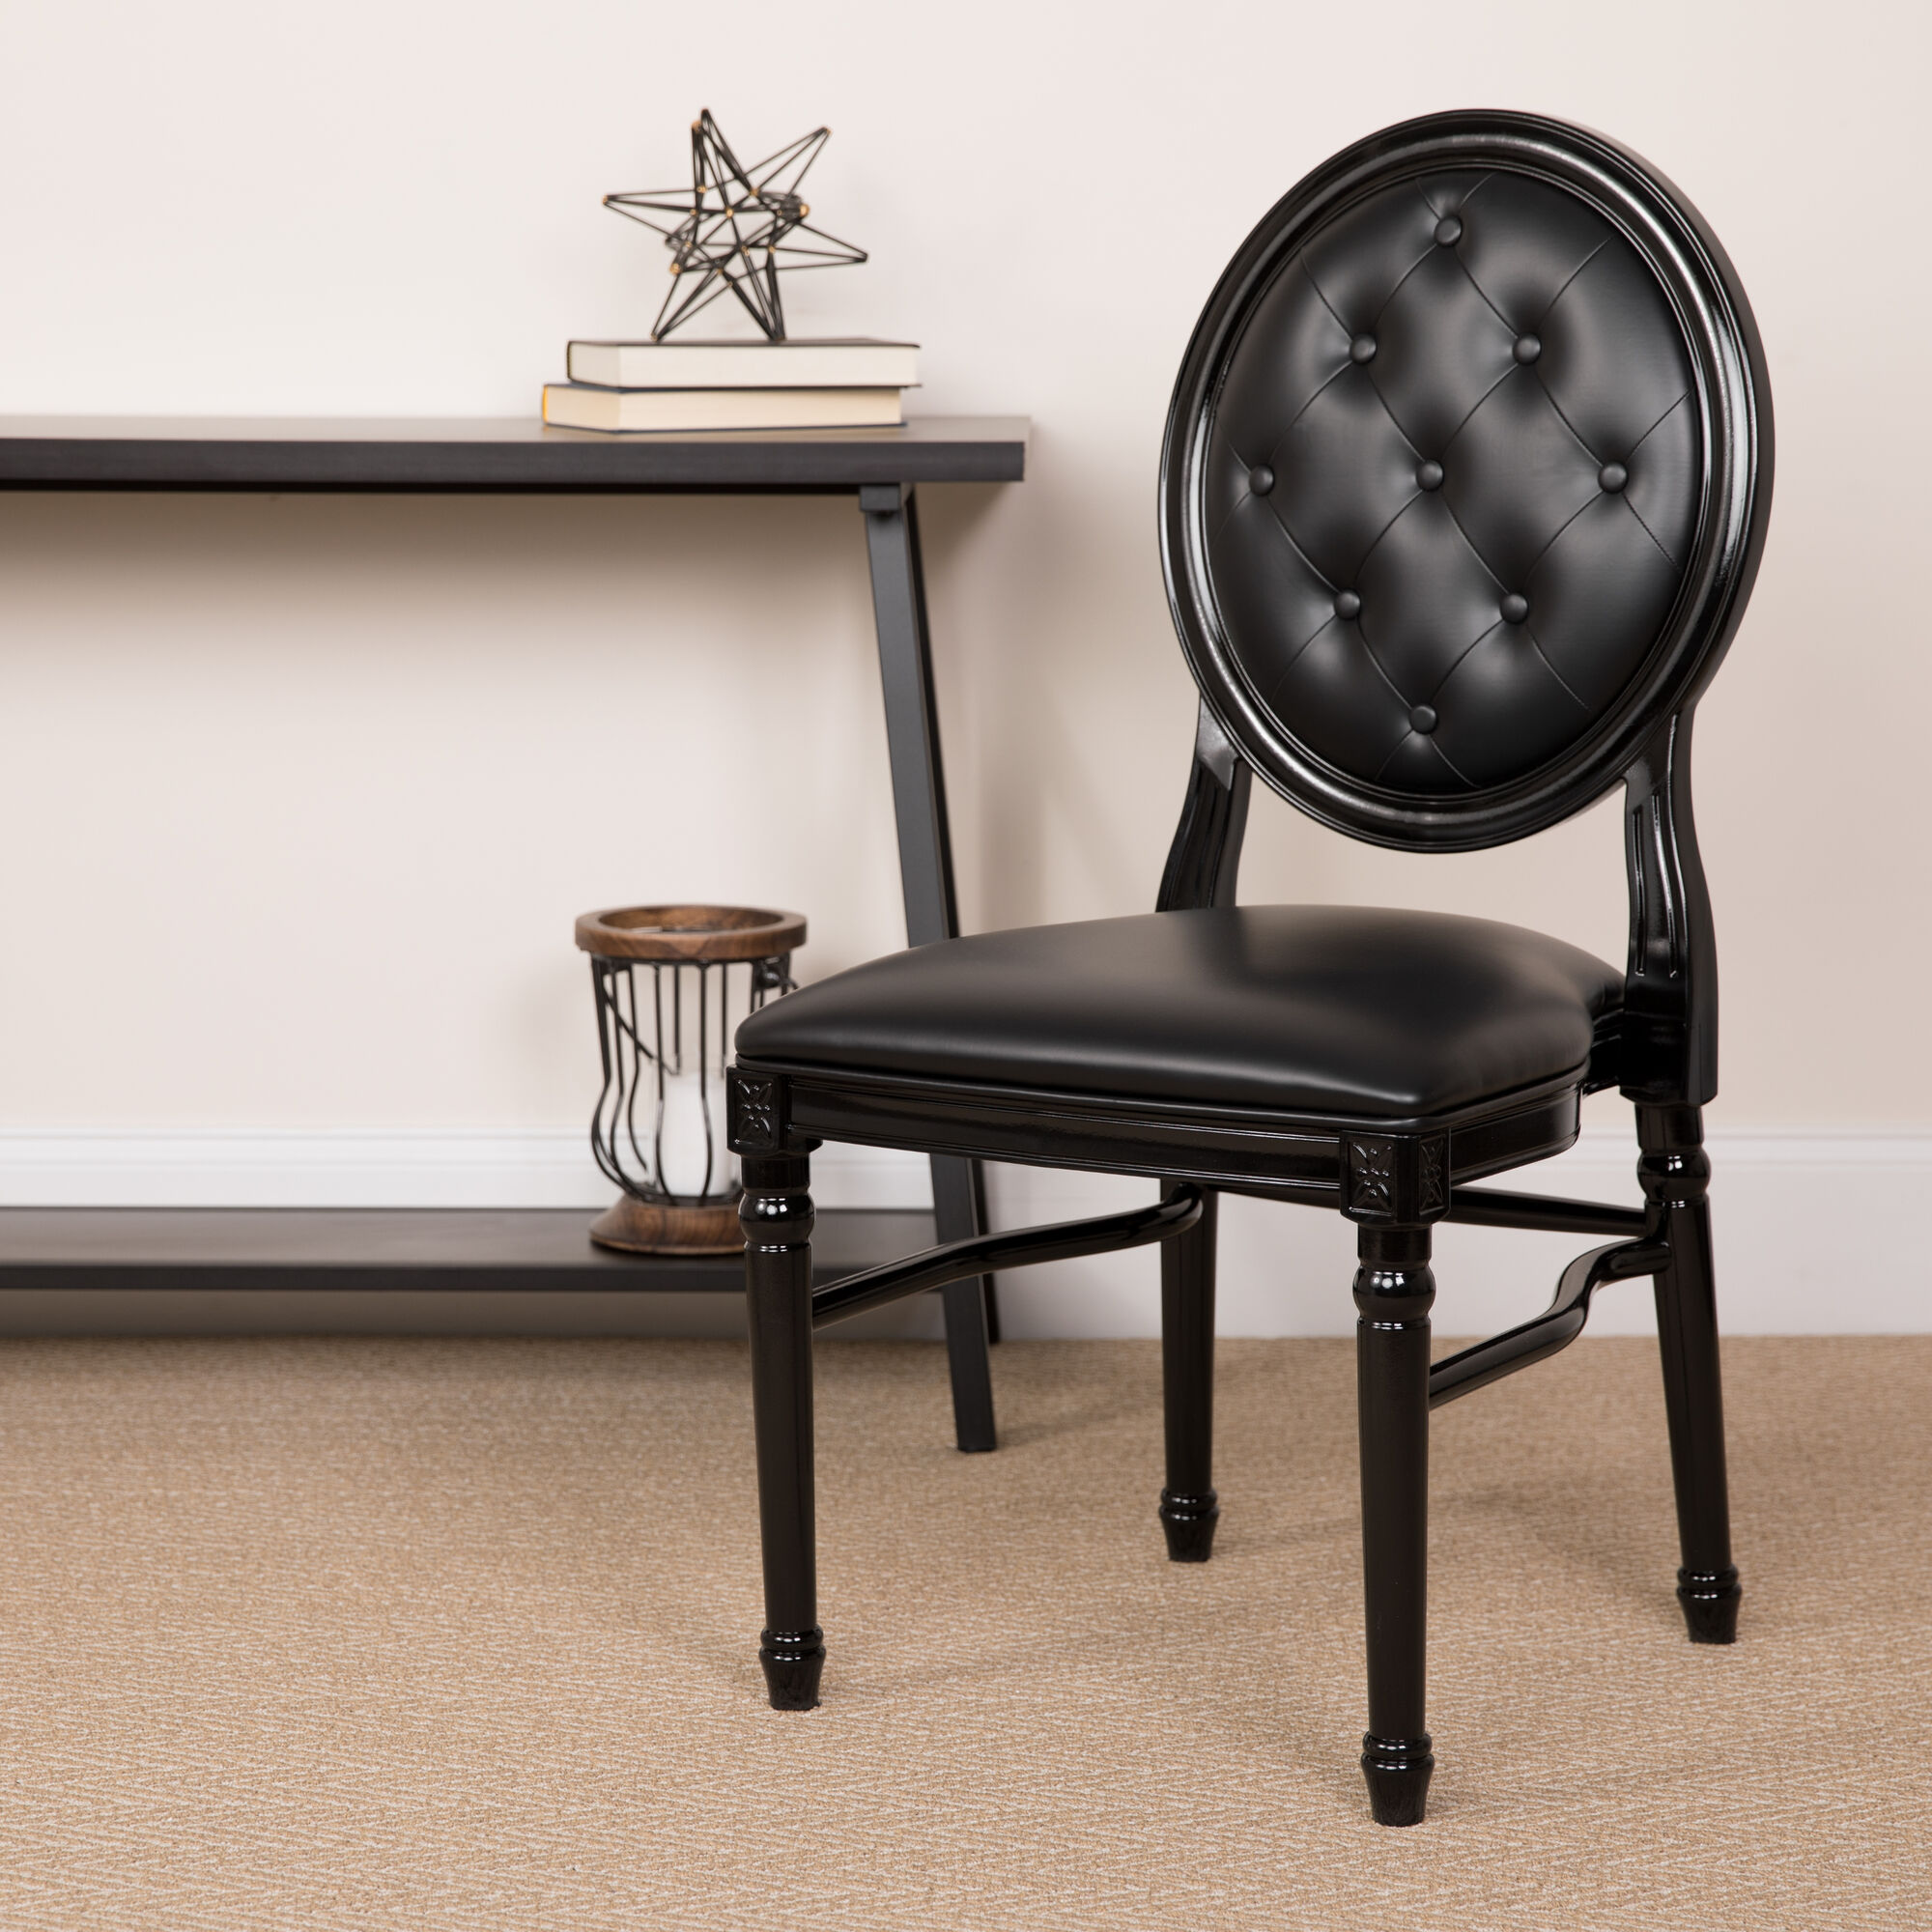 Tufted Black Dining Chair Le B T Mon, Dining Room Sets With King Louis Chairs